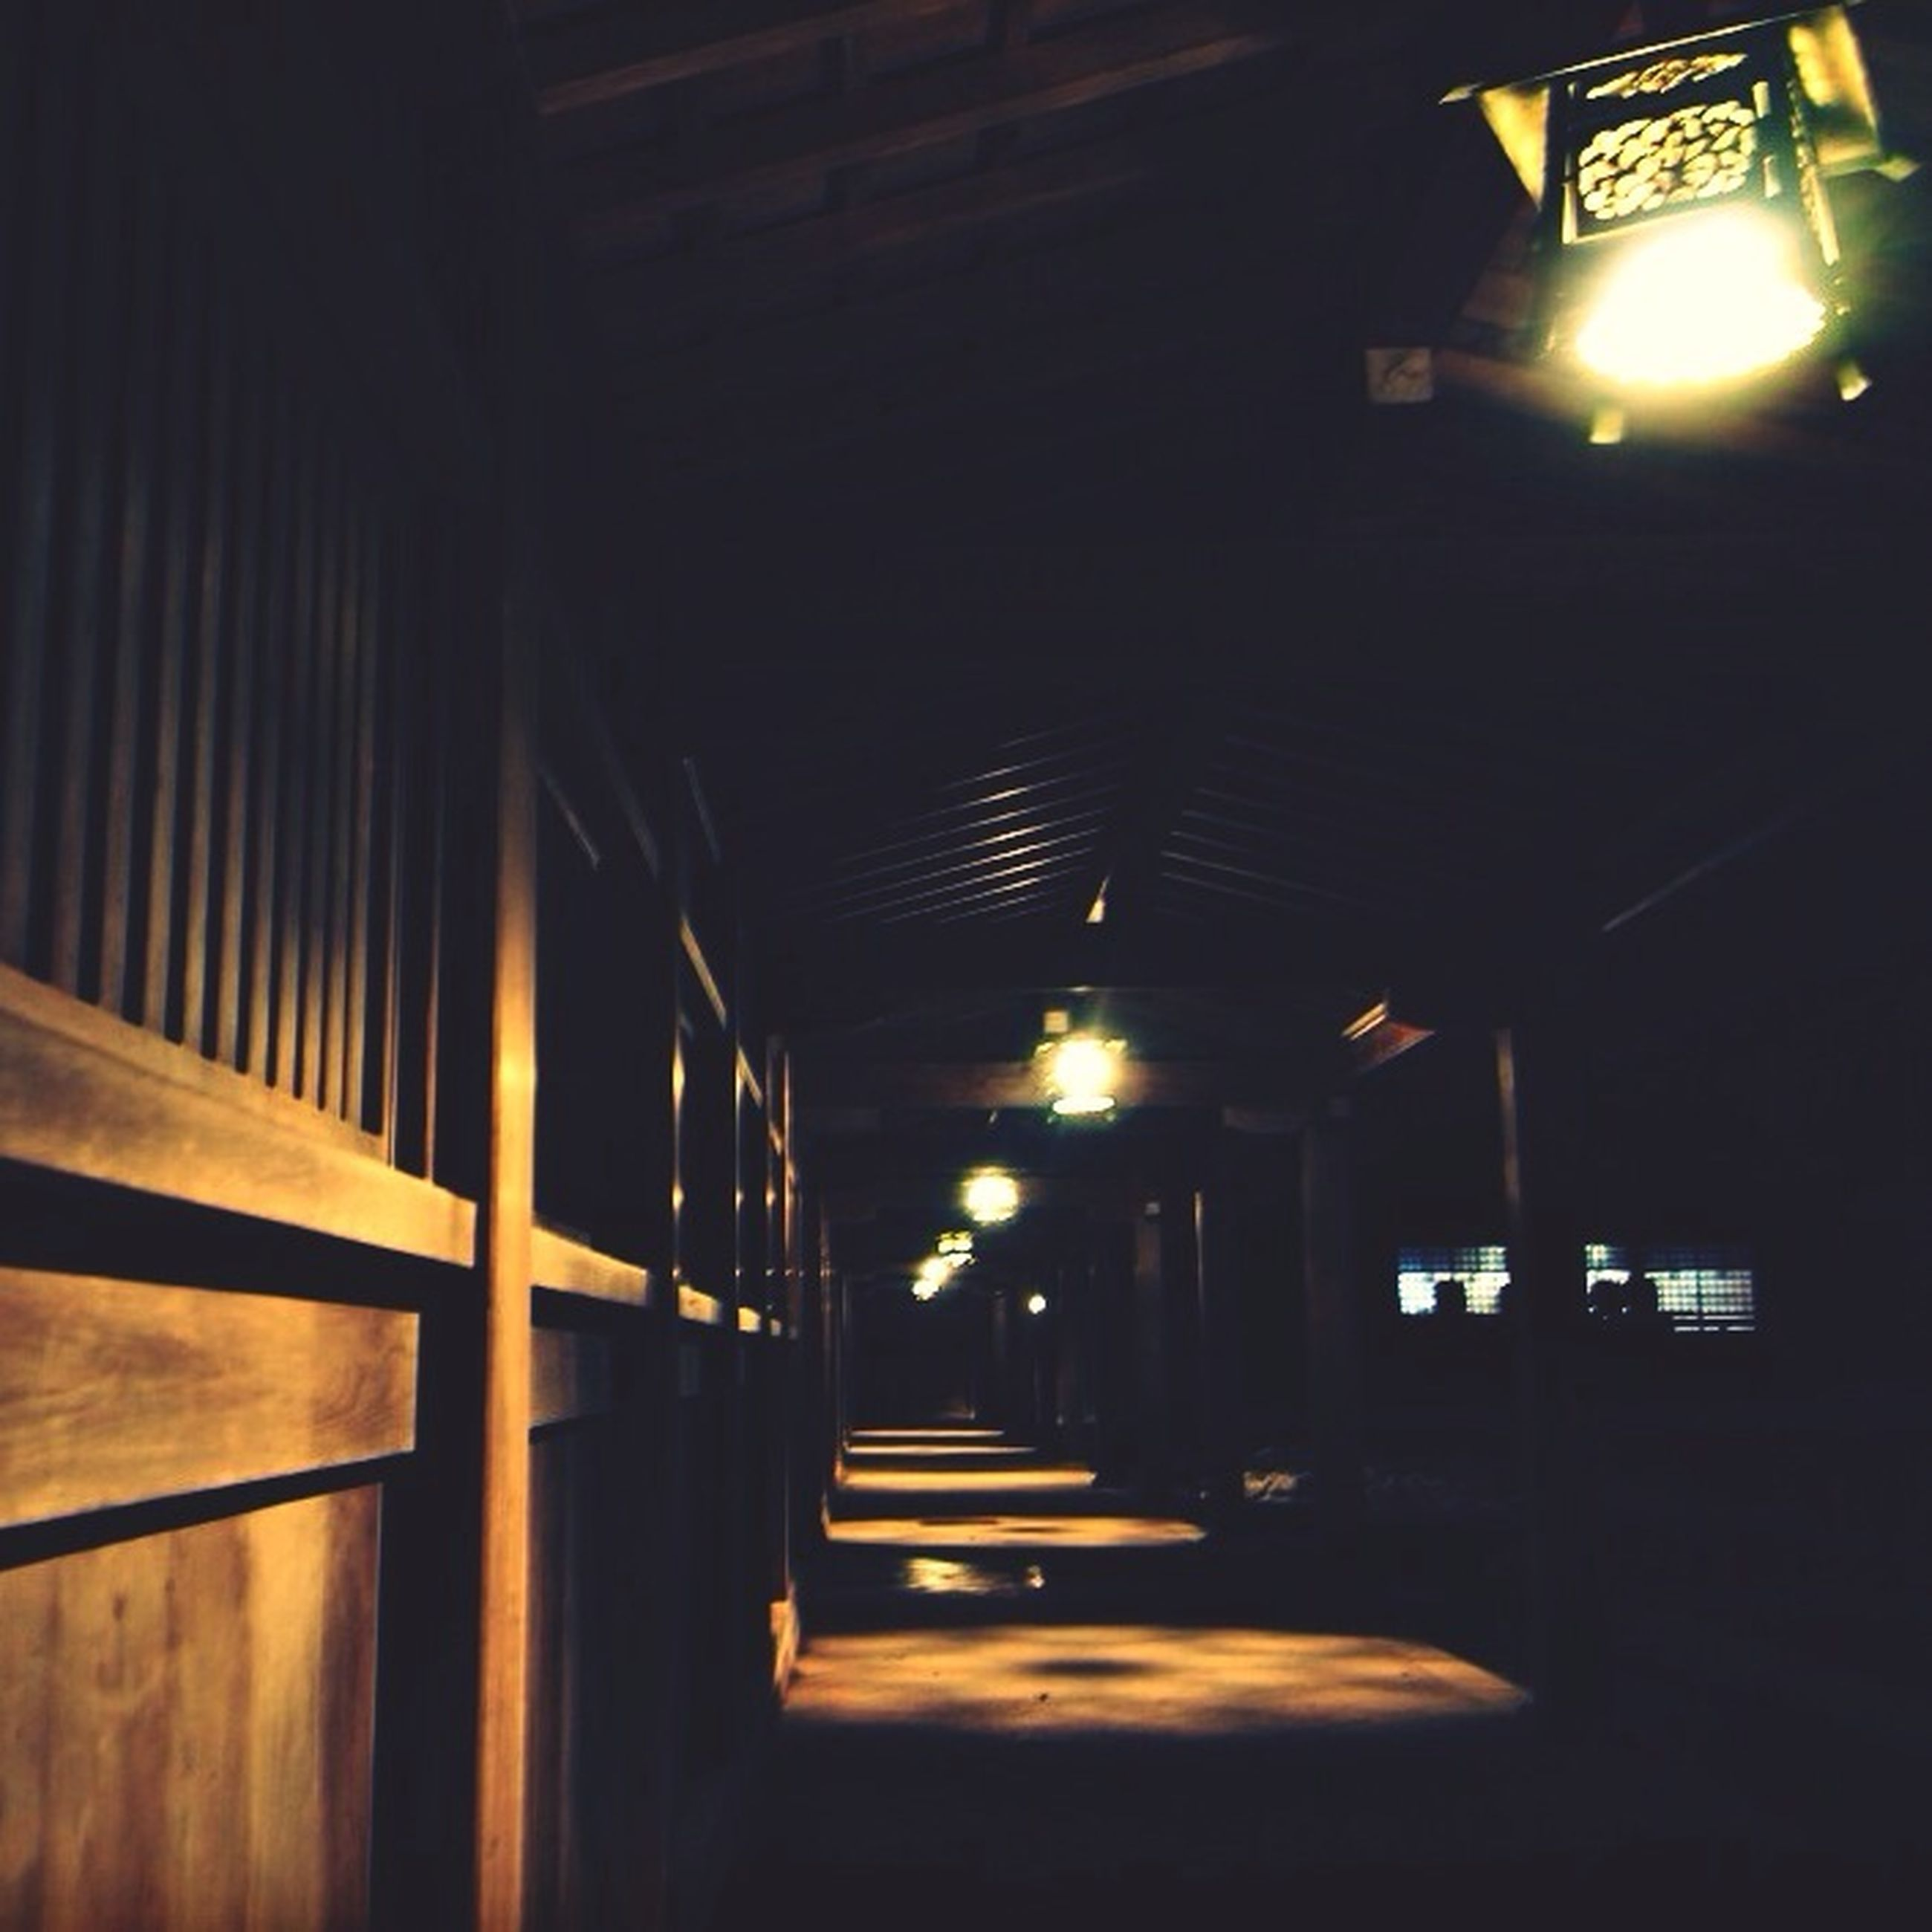 indoors, illuminated, built structure, architecture, lighting equipment, ceiling, interior, corridor, architectural column, night, light - natural phenomenon, empty, the way forward, absence, column, entrance, wood - material, door, no people, electric light